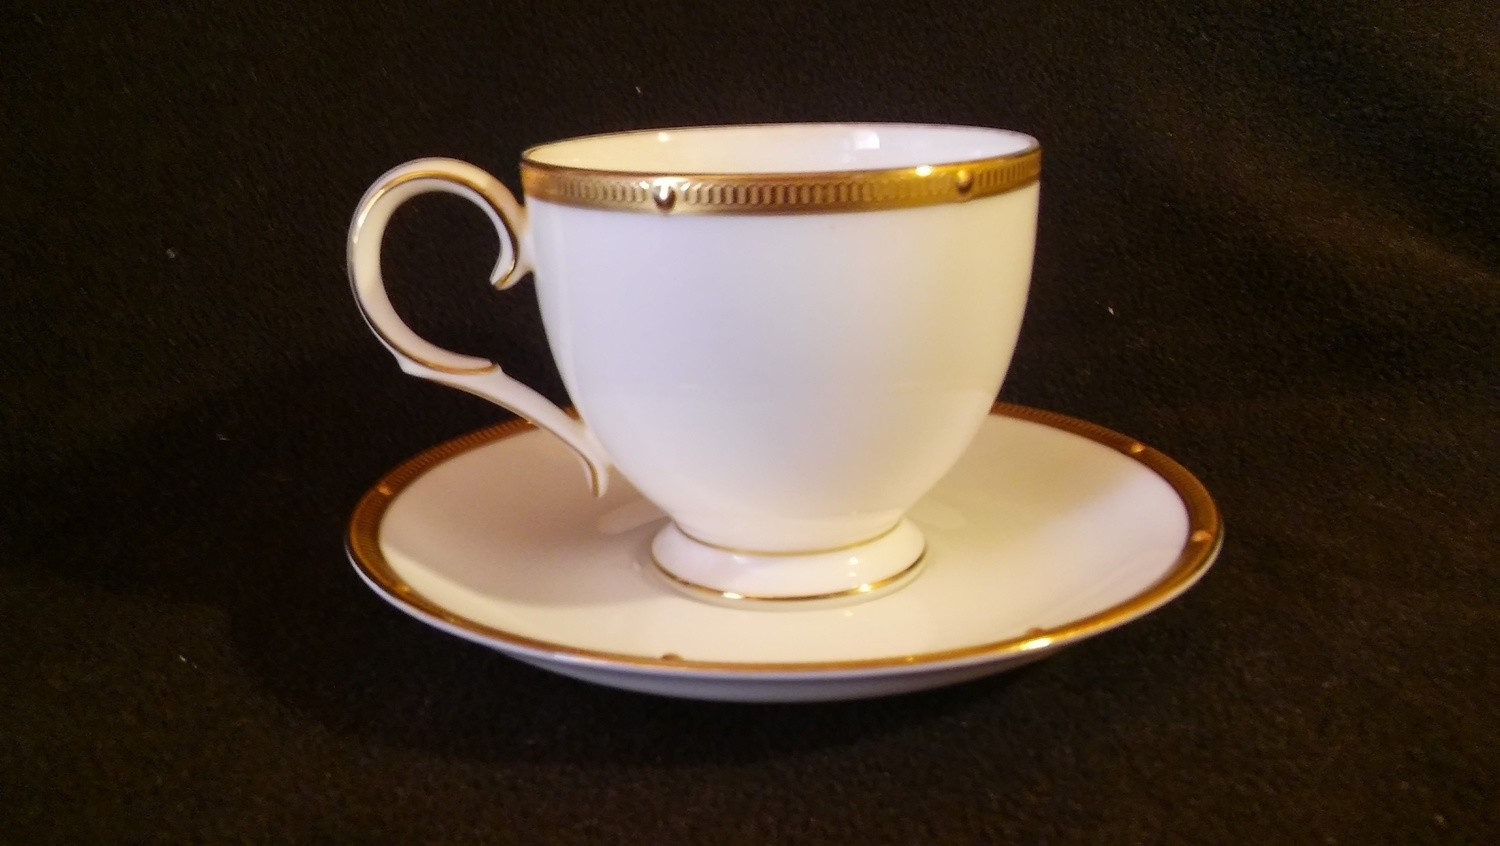 Noritake Bone China, Footed Cup & Saucer, Rochelle Pattern #4796